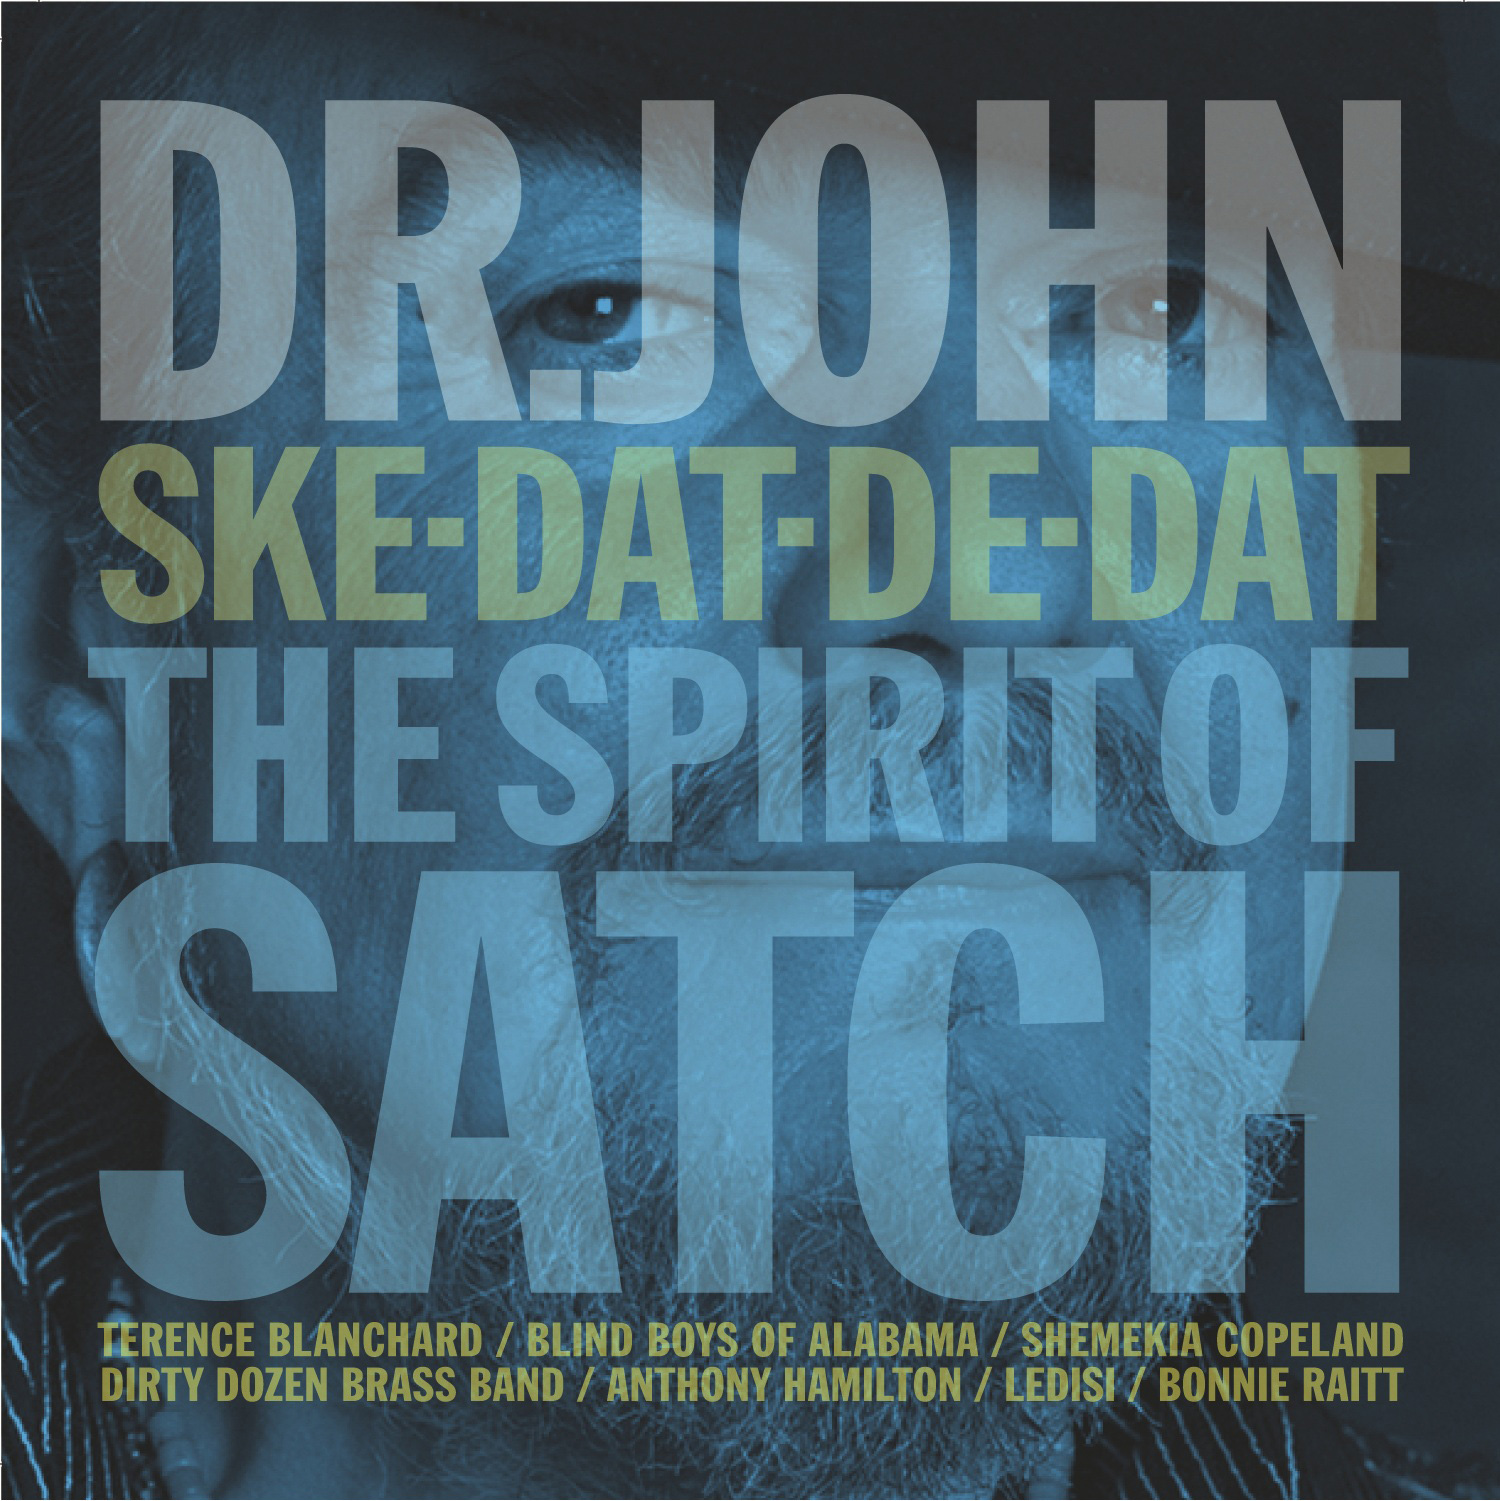 """Ske-Dat-De-Dat: The Spirit of Satch"""